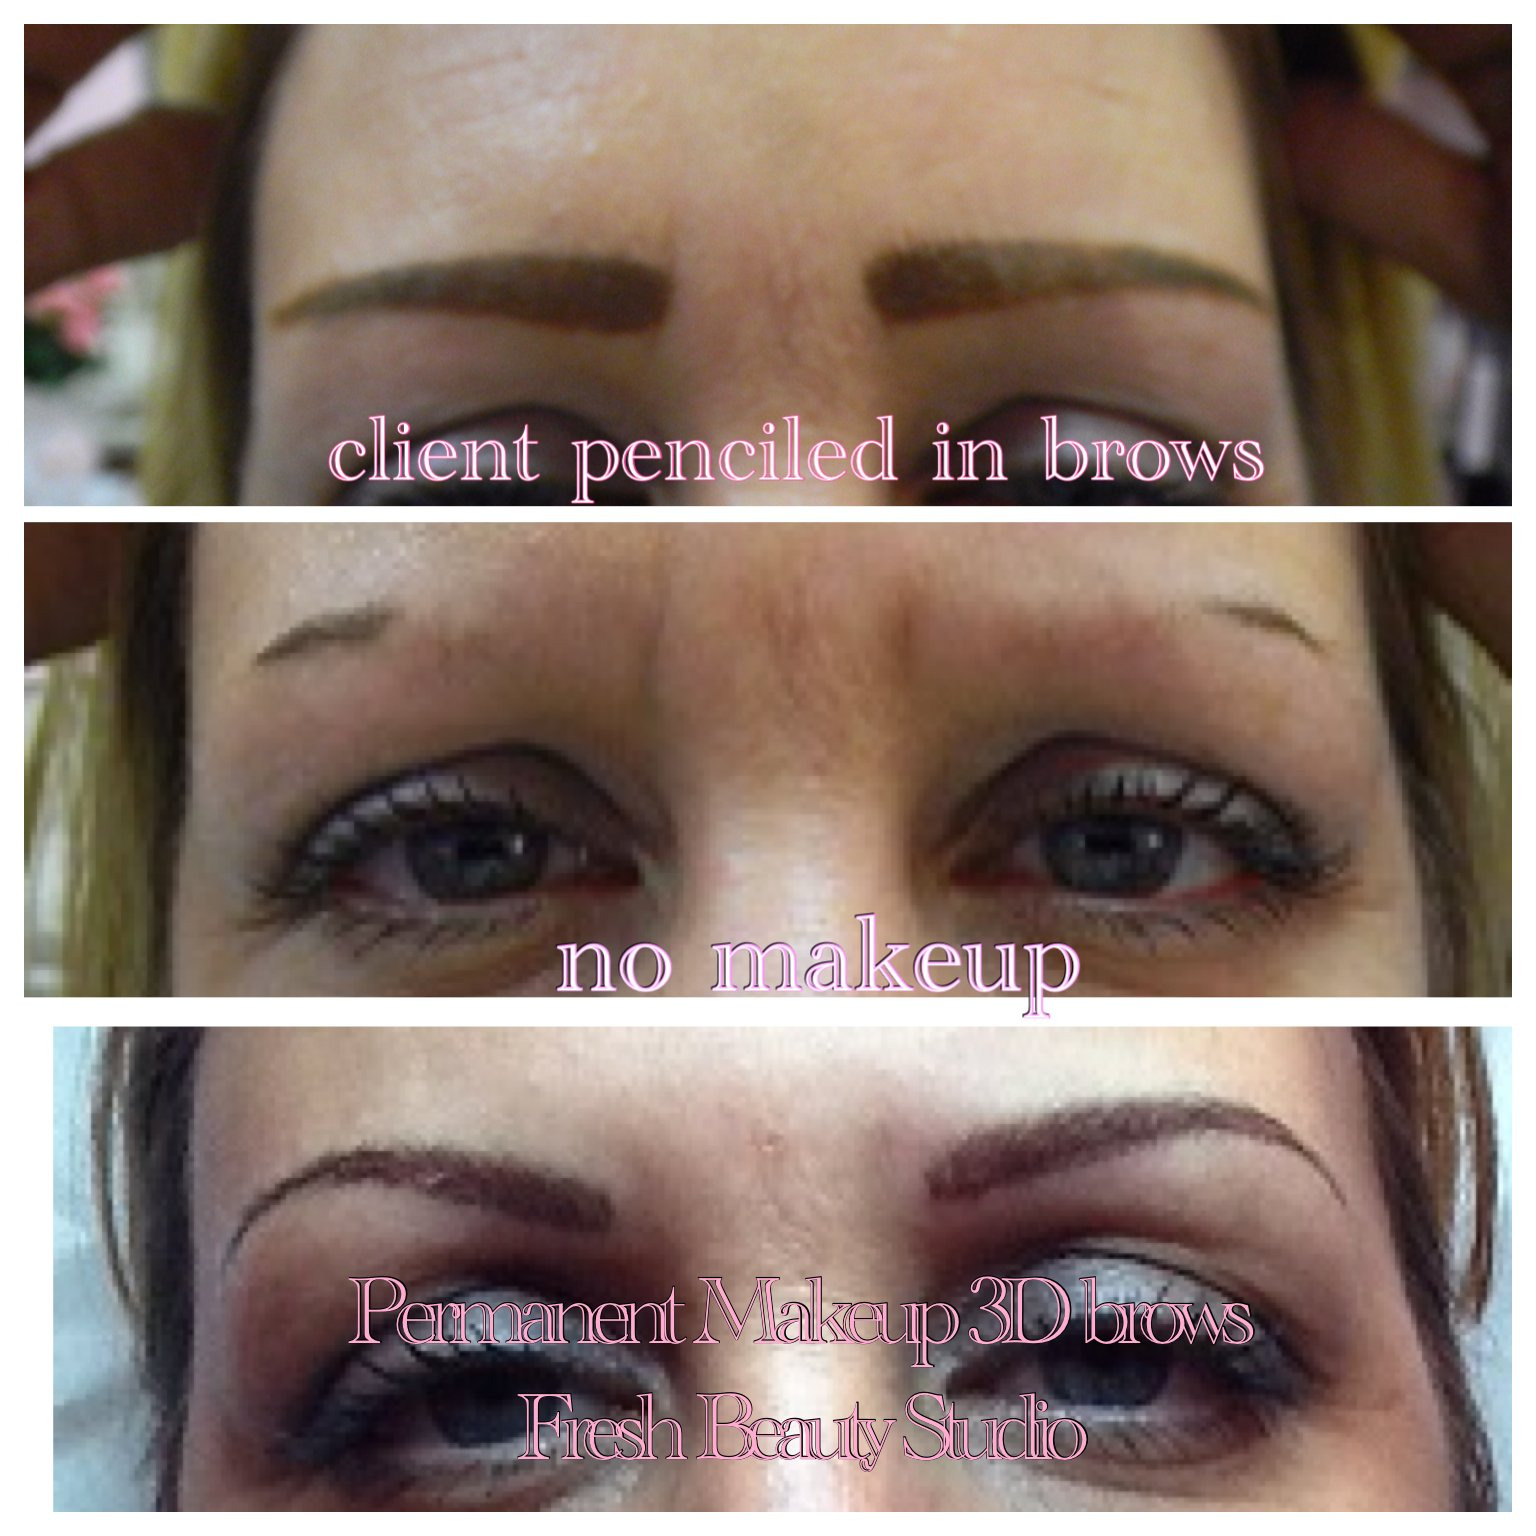 Permanent Makeup Fort Lauderdale Permanent Makeup Florida